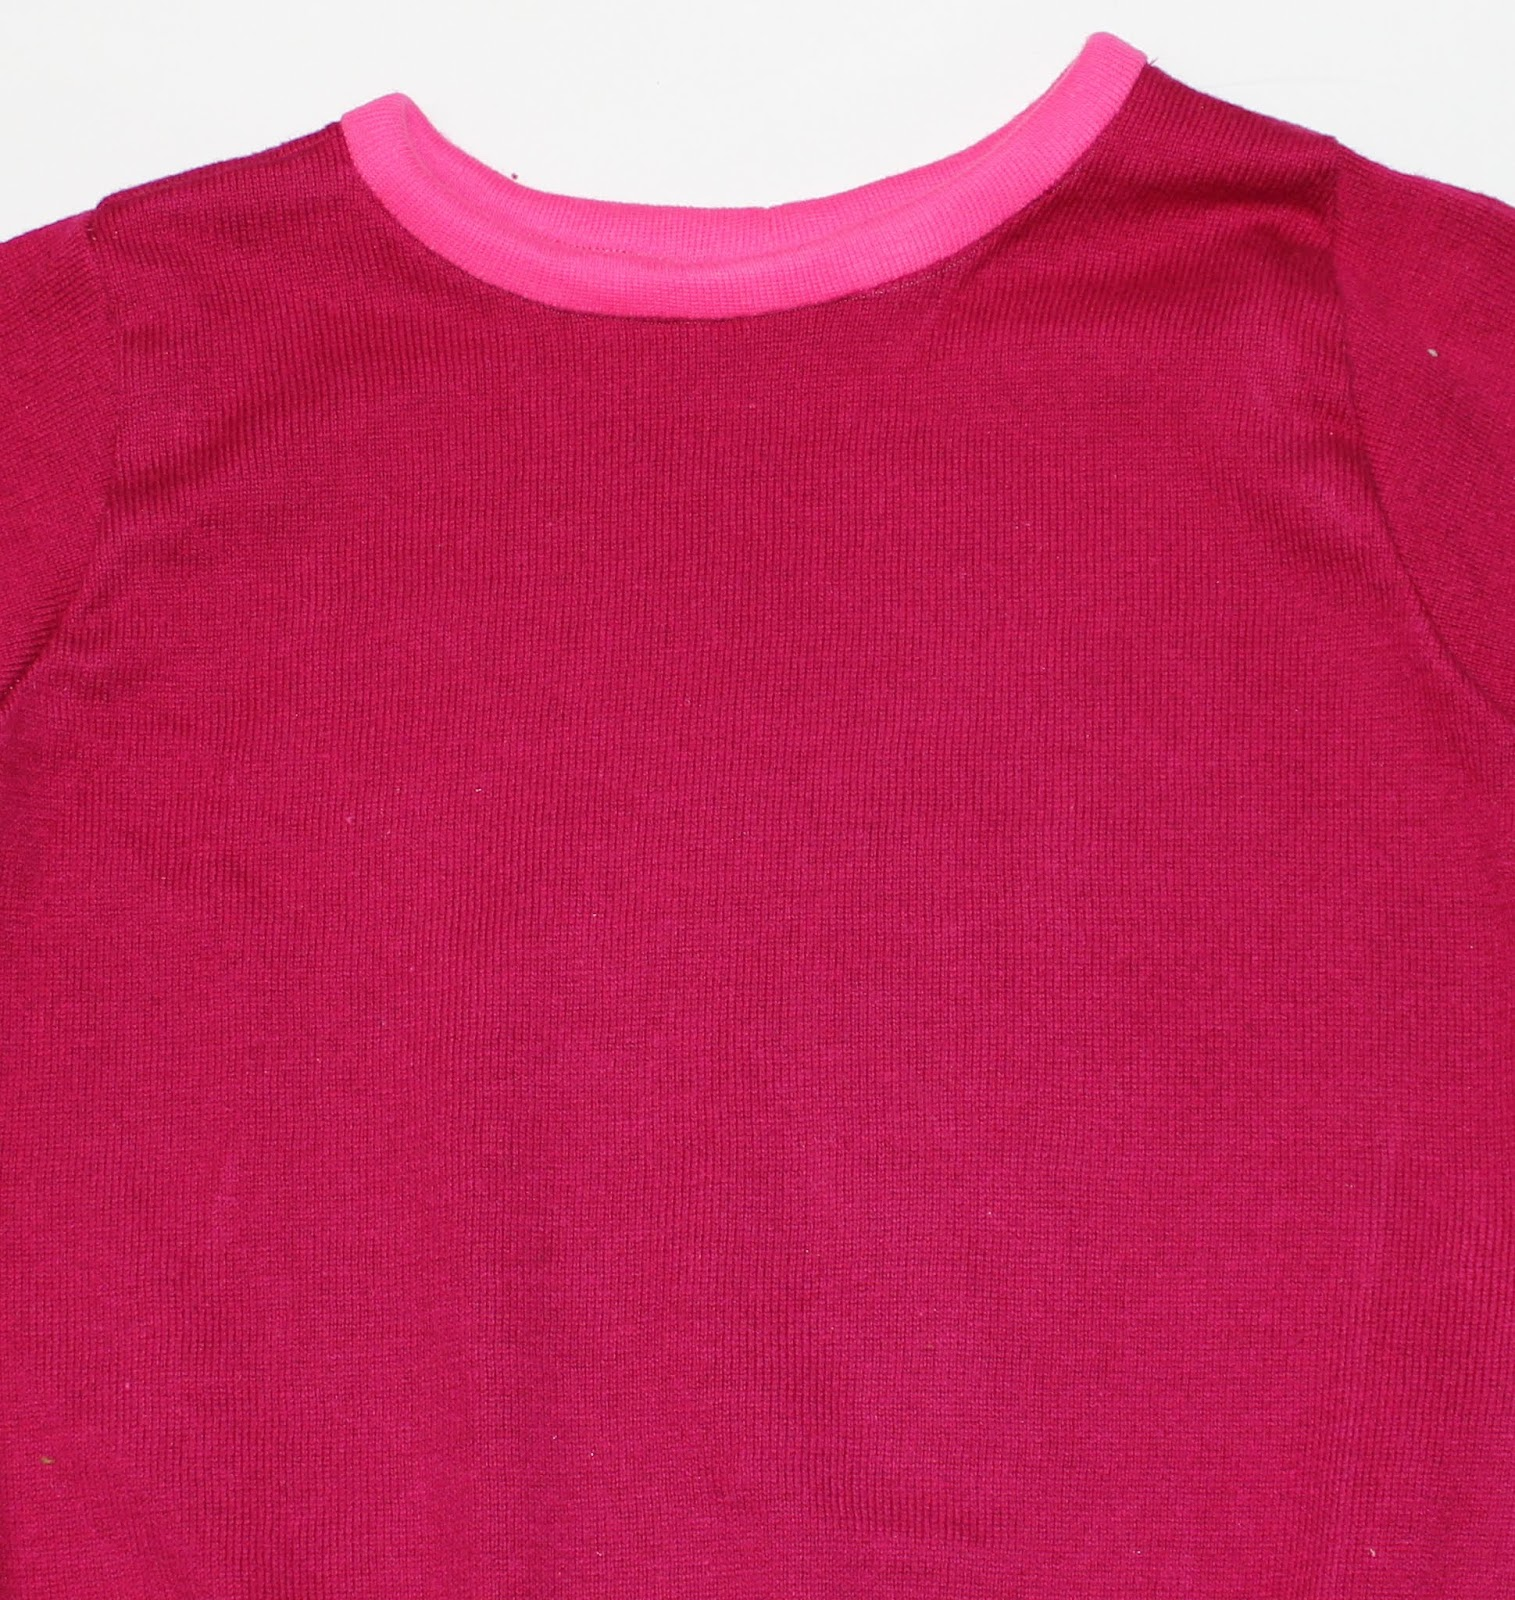 T-shirt Neck Binding, Inching Out Of The Comfort Zone